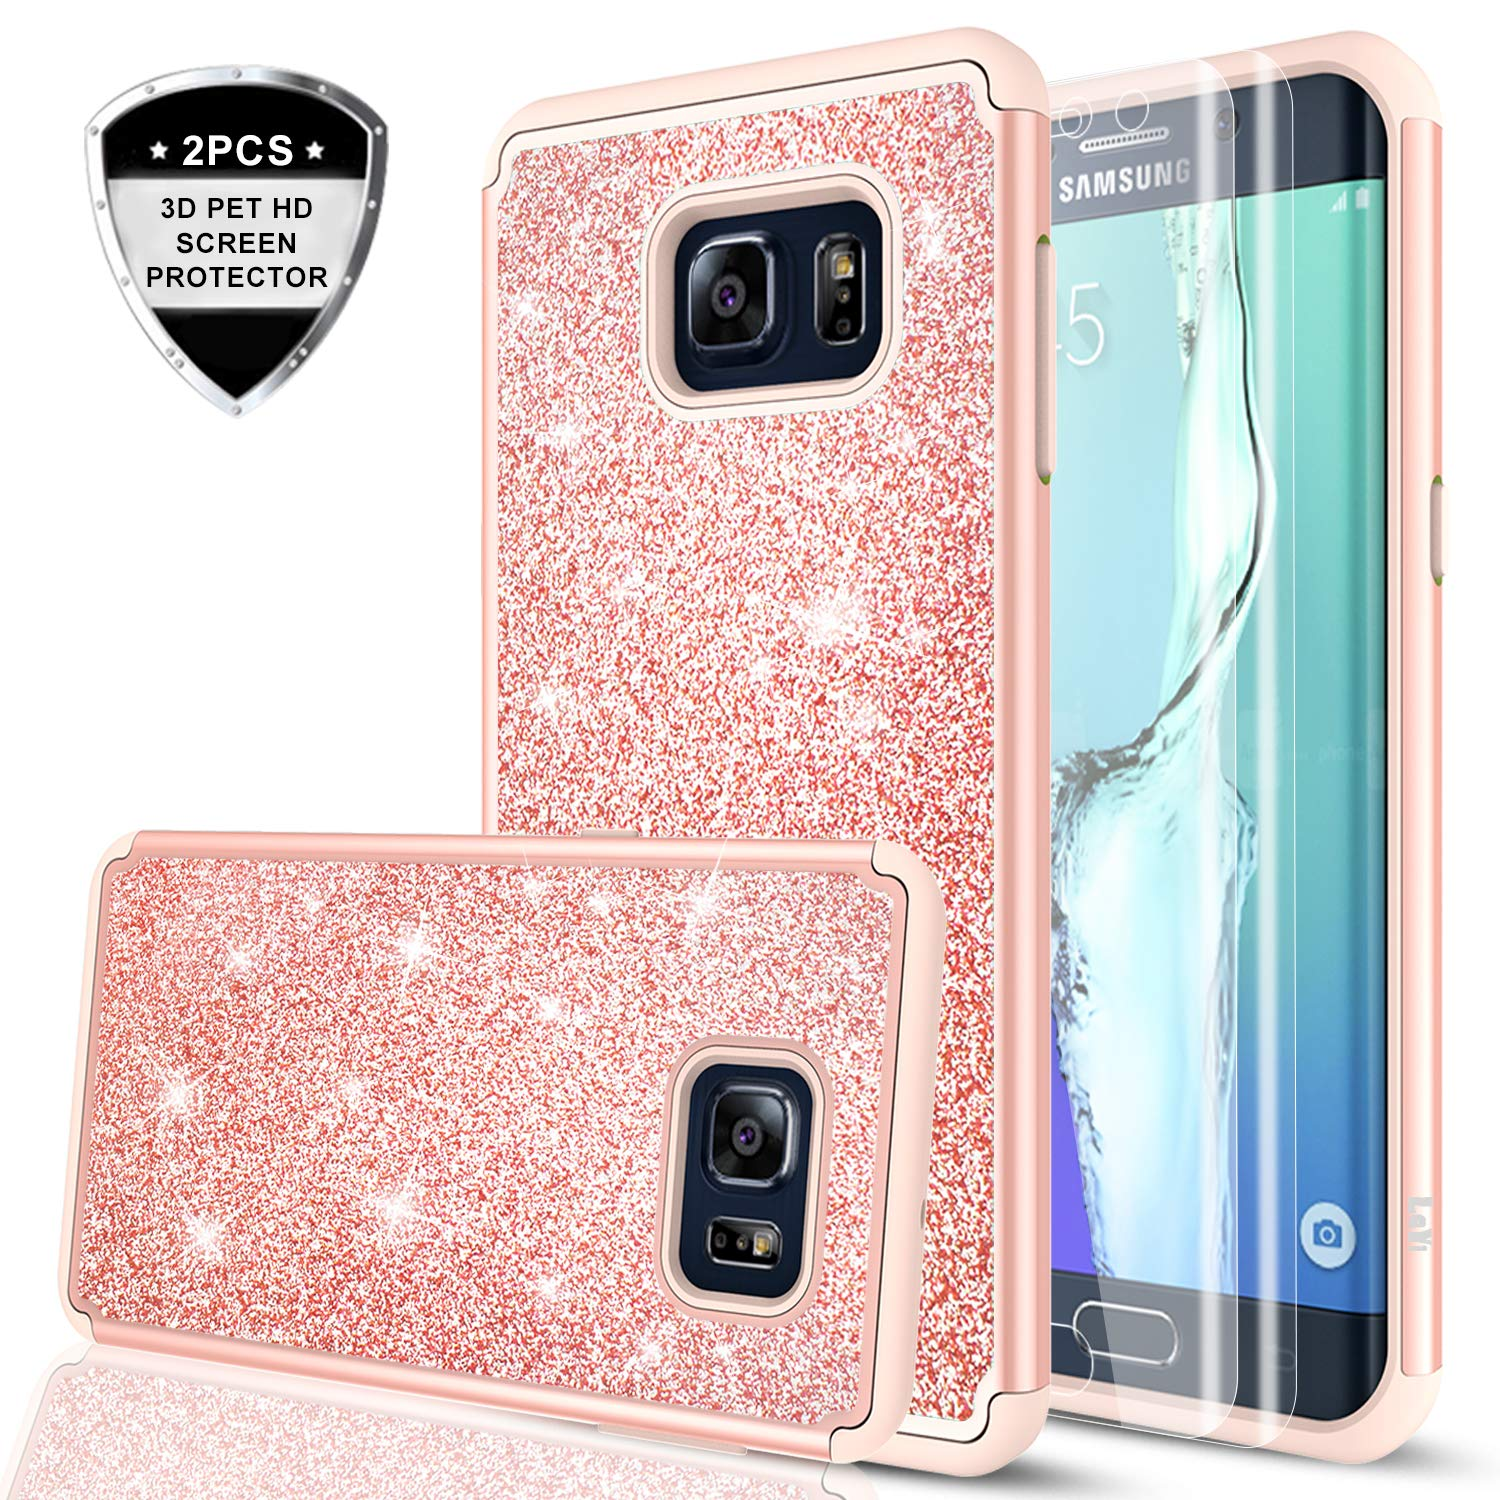 phone case for galaxy s6 edge plus bling amazon comgalaxy s6 edge plus case (not fit s6 edge) with 3d pte screen protector